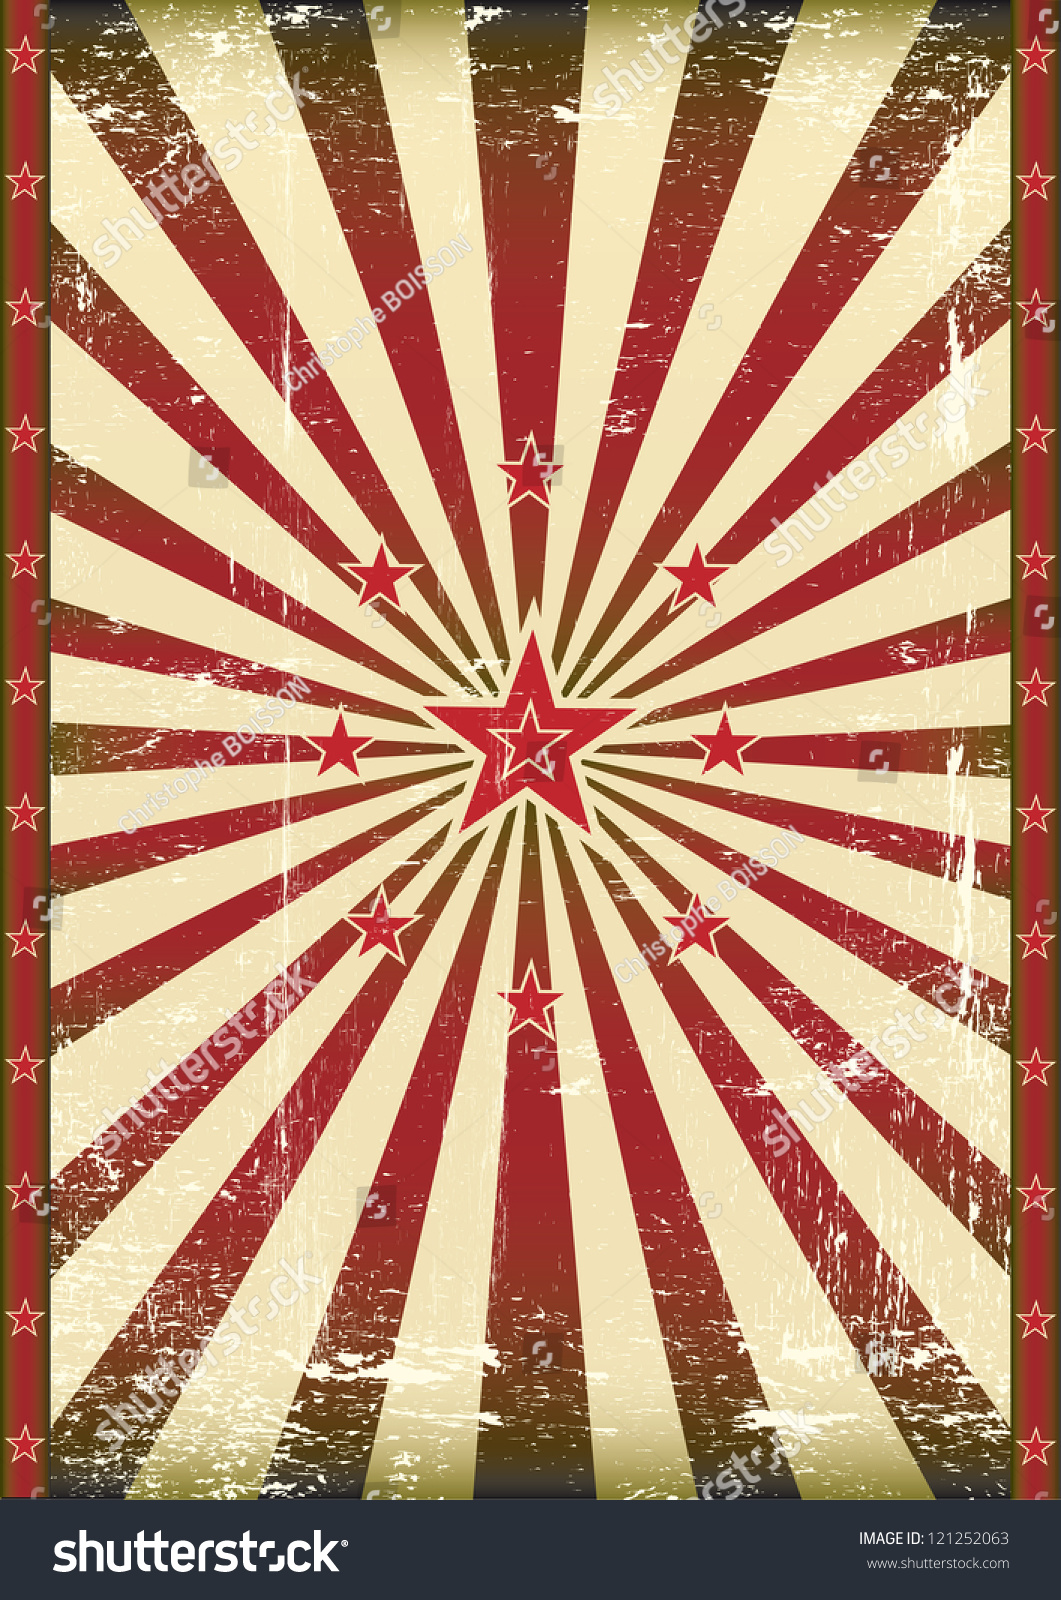 Vintage Red Star Background. A Poster With Red Sunbeams ...